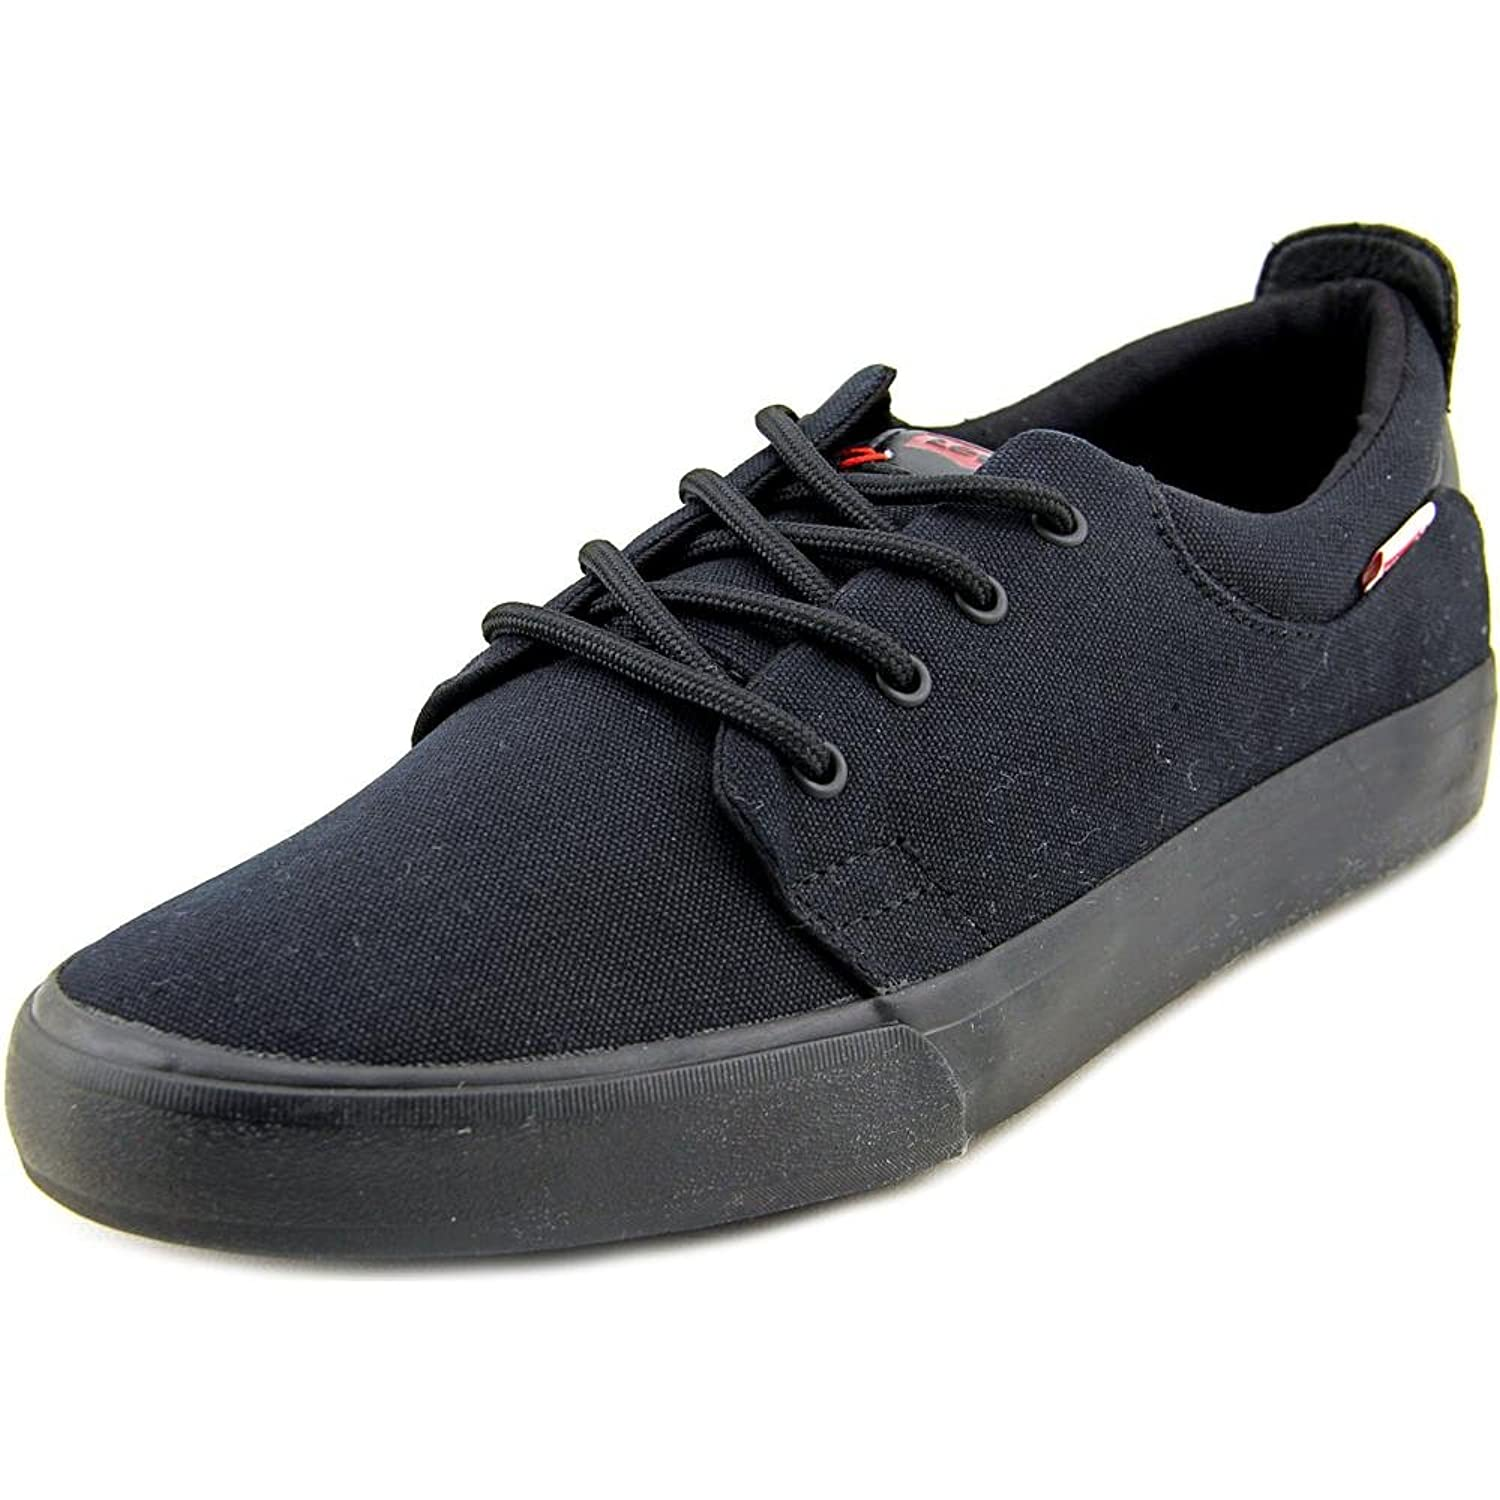 Levi's Justin Mens Black Sneakers